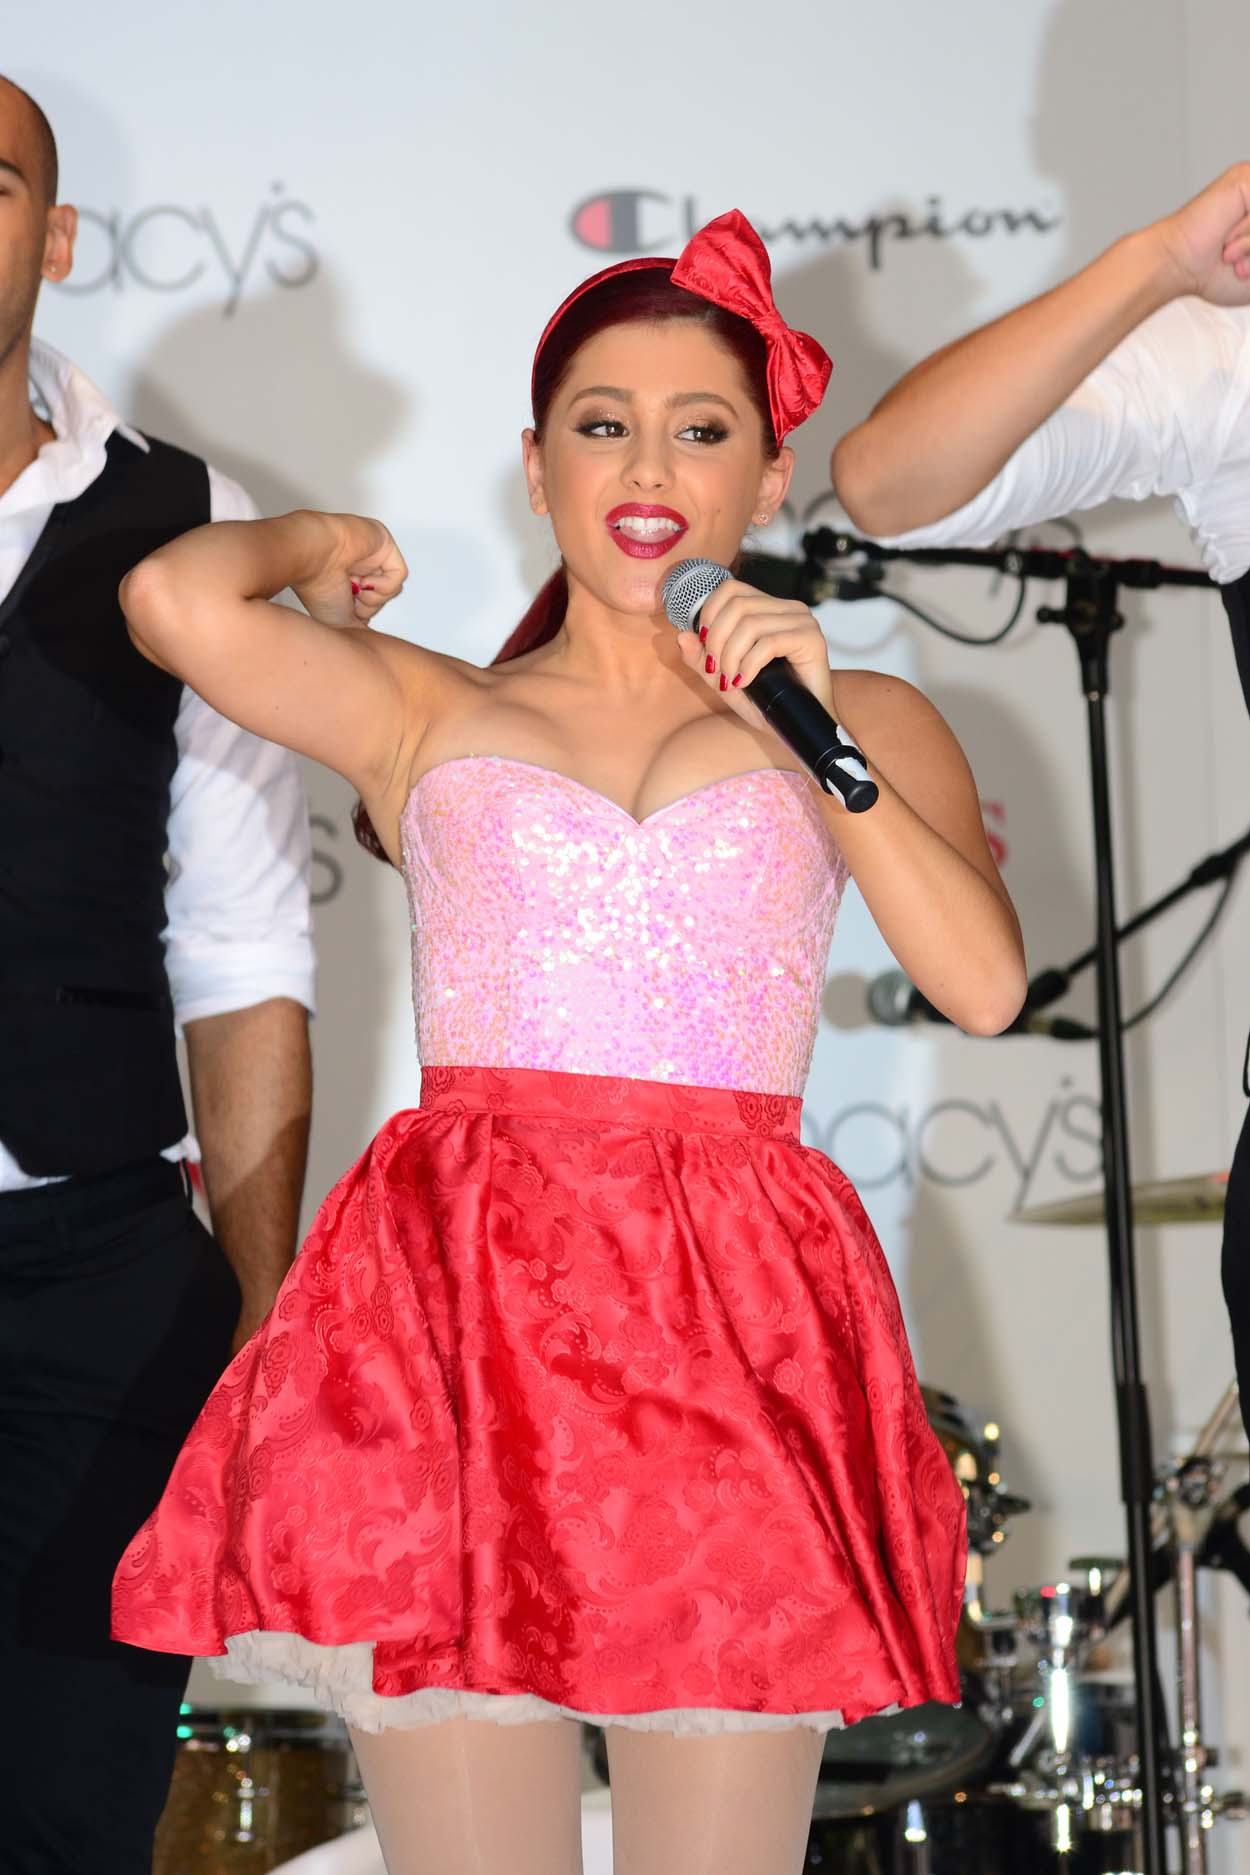 Ariana Grande performing at Macy's Annual Summer Blowout Show in NYC on July 17, 2011